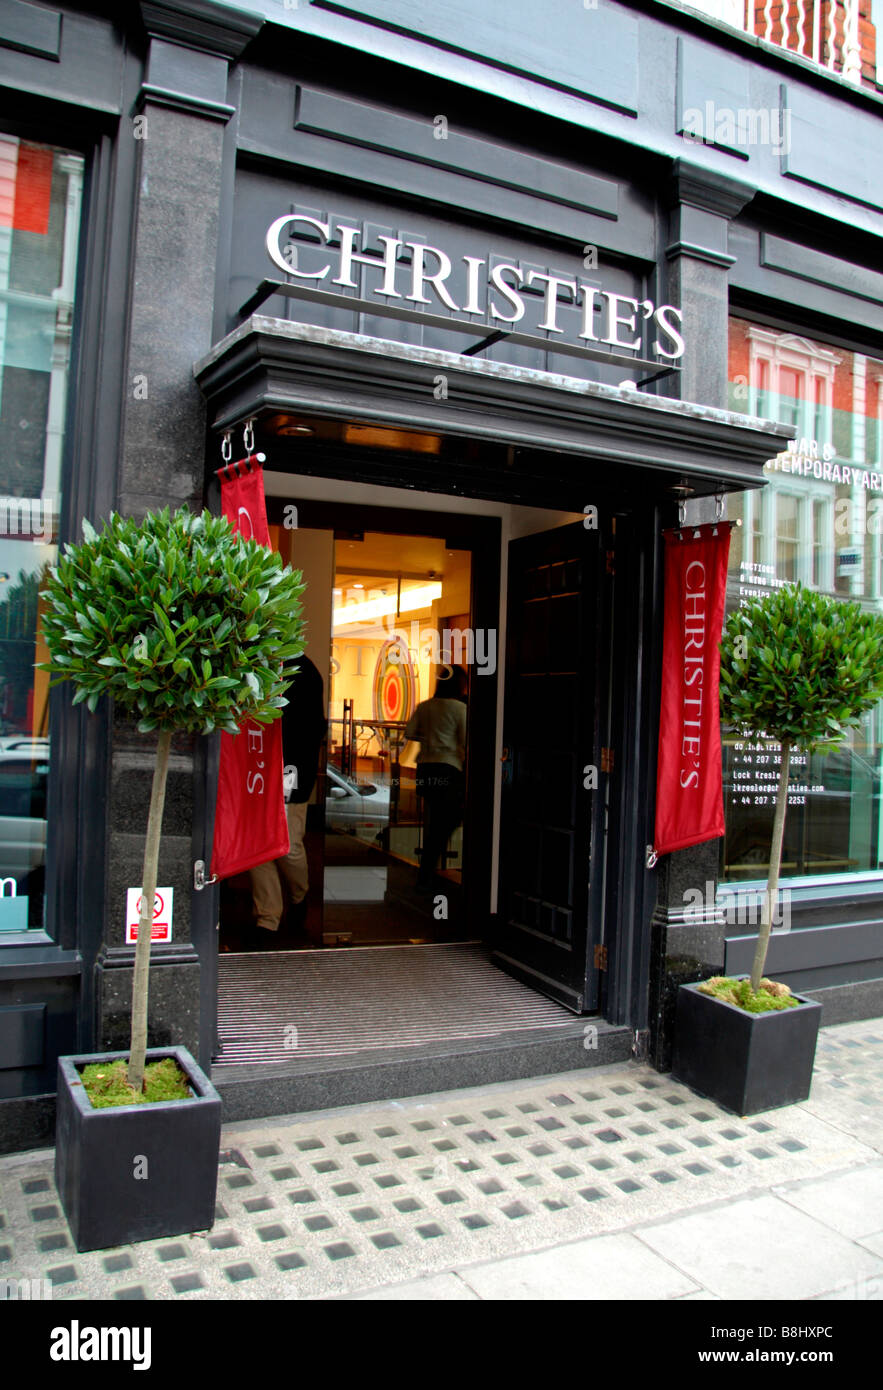 Entrance to the Christie's Auction House on Old Brompton Raod, London. Feb 2009 - Stock Image